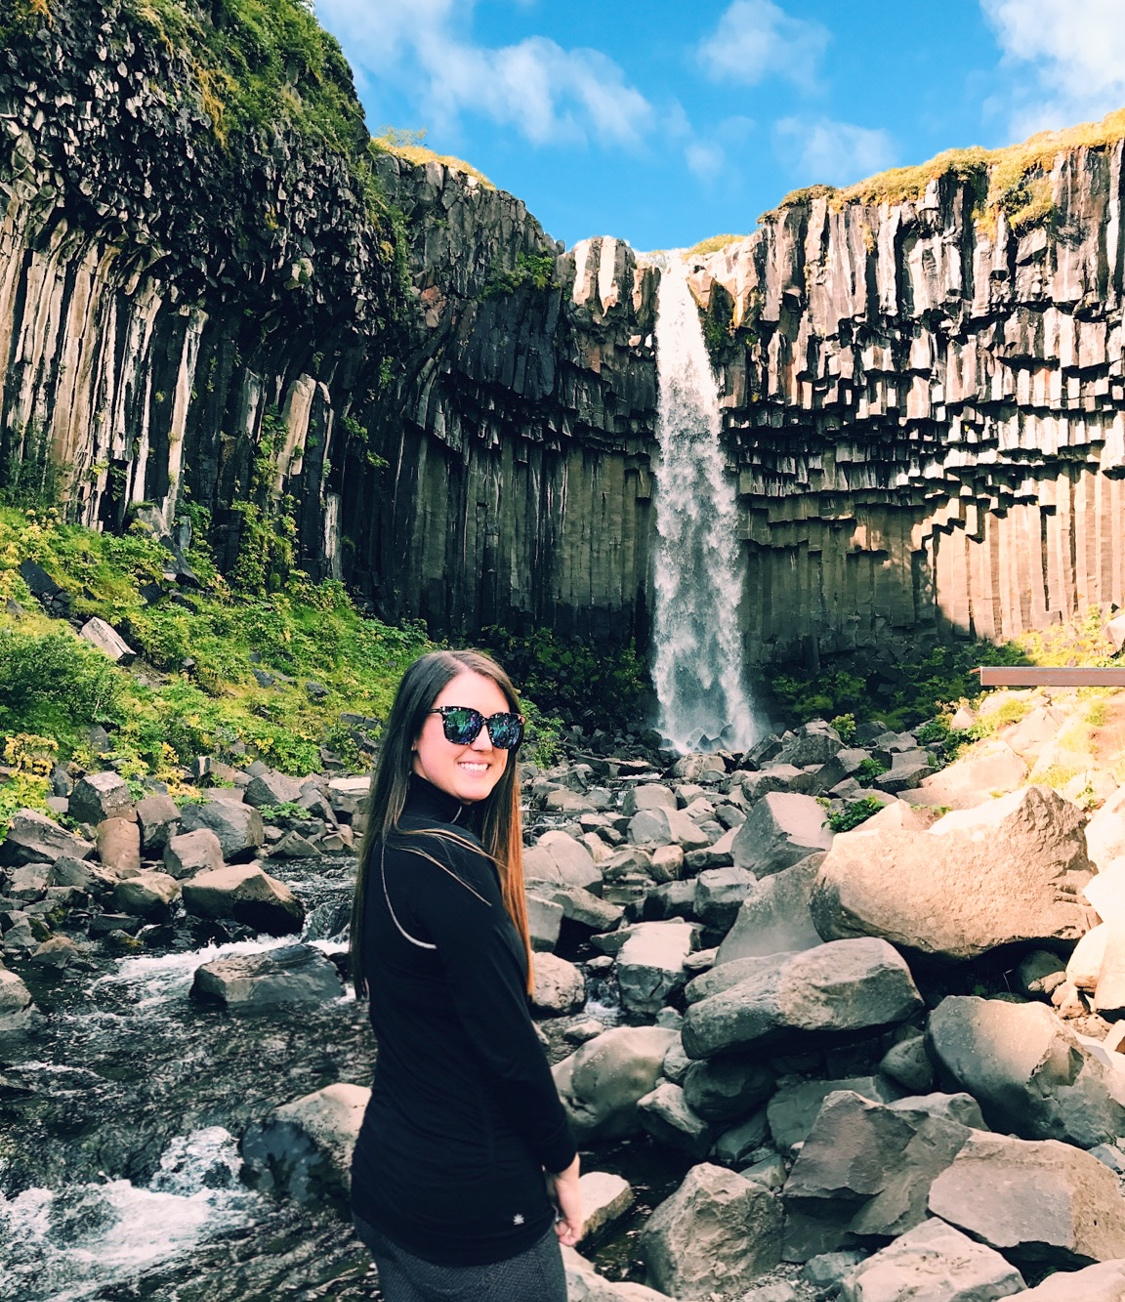 svartifoss-black-hexagonal-basalt-columns-waterfall.jpg